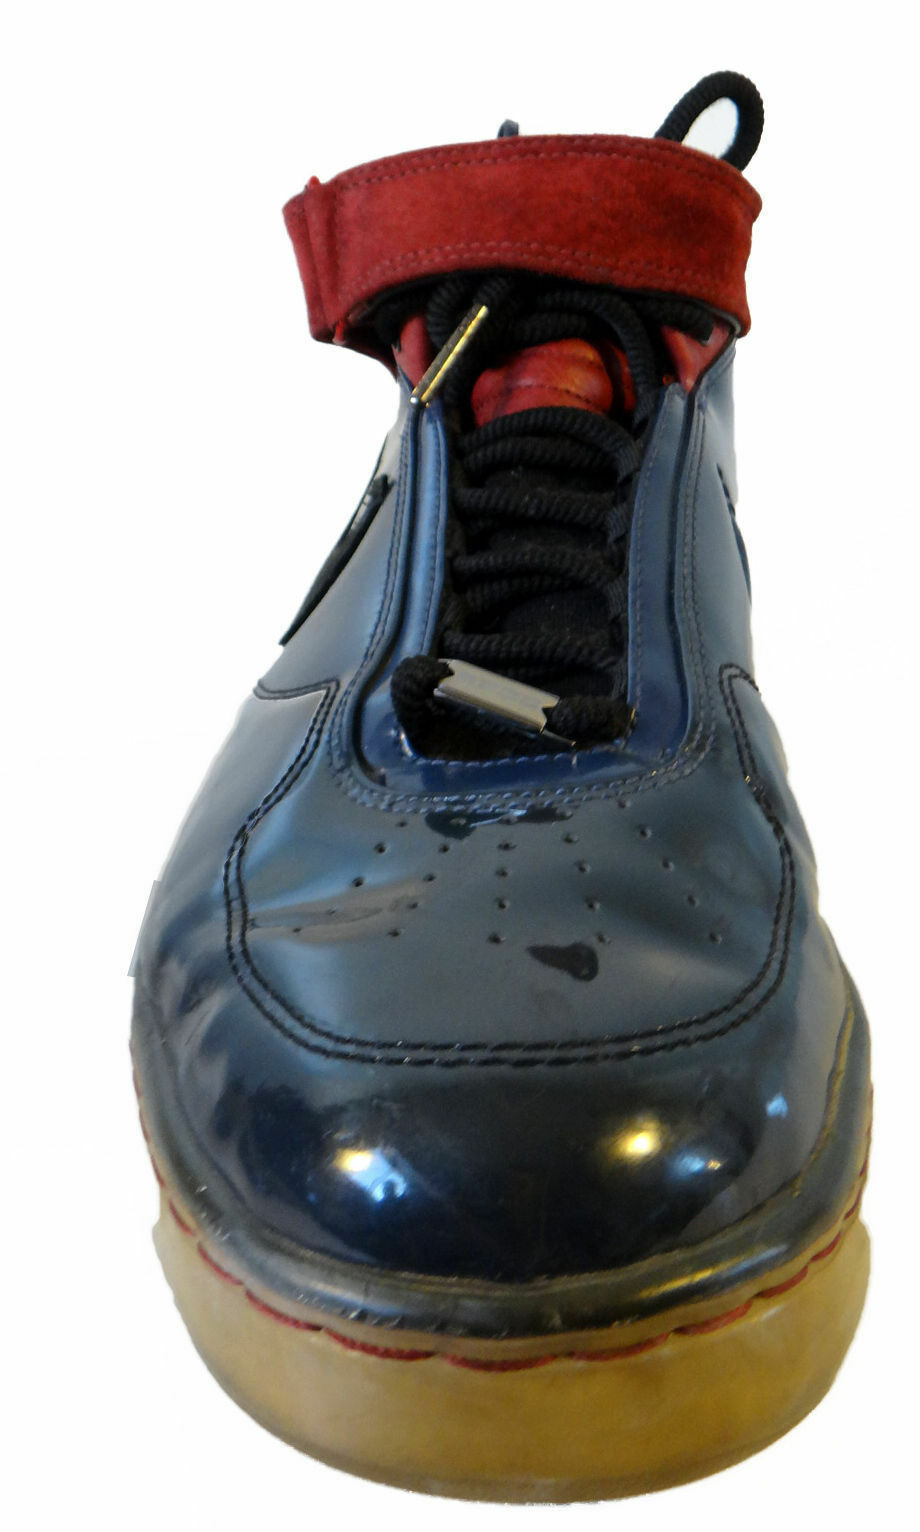 NIKE Air force 25 eur AF25 us 12 eur 25 46 patent shiny leather red blue b552f9